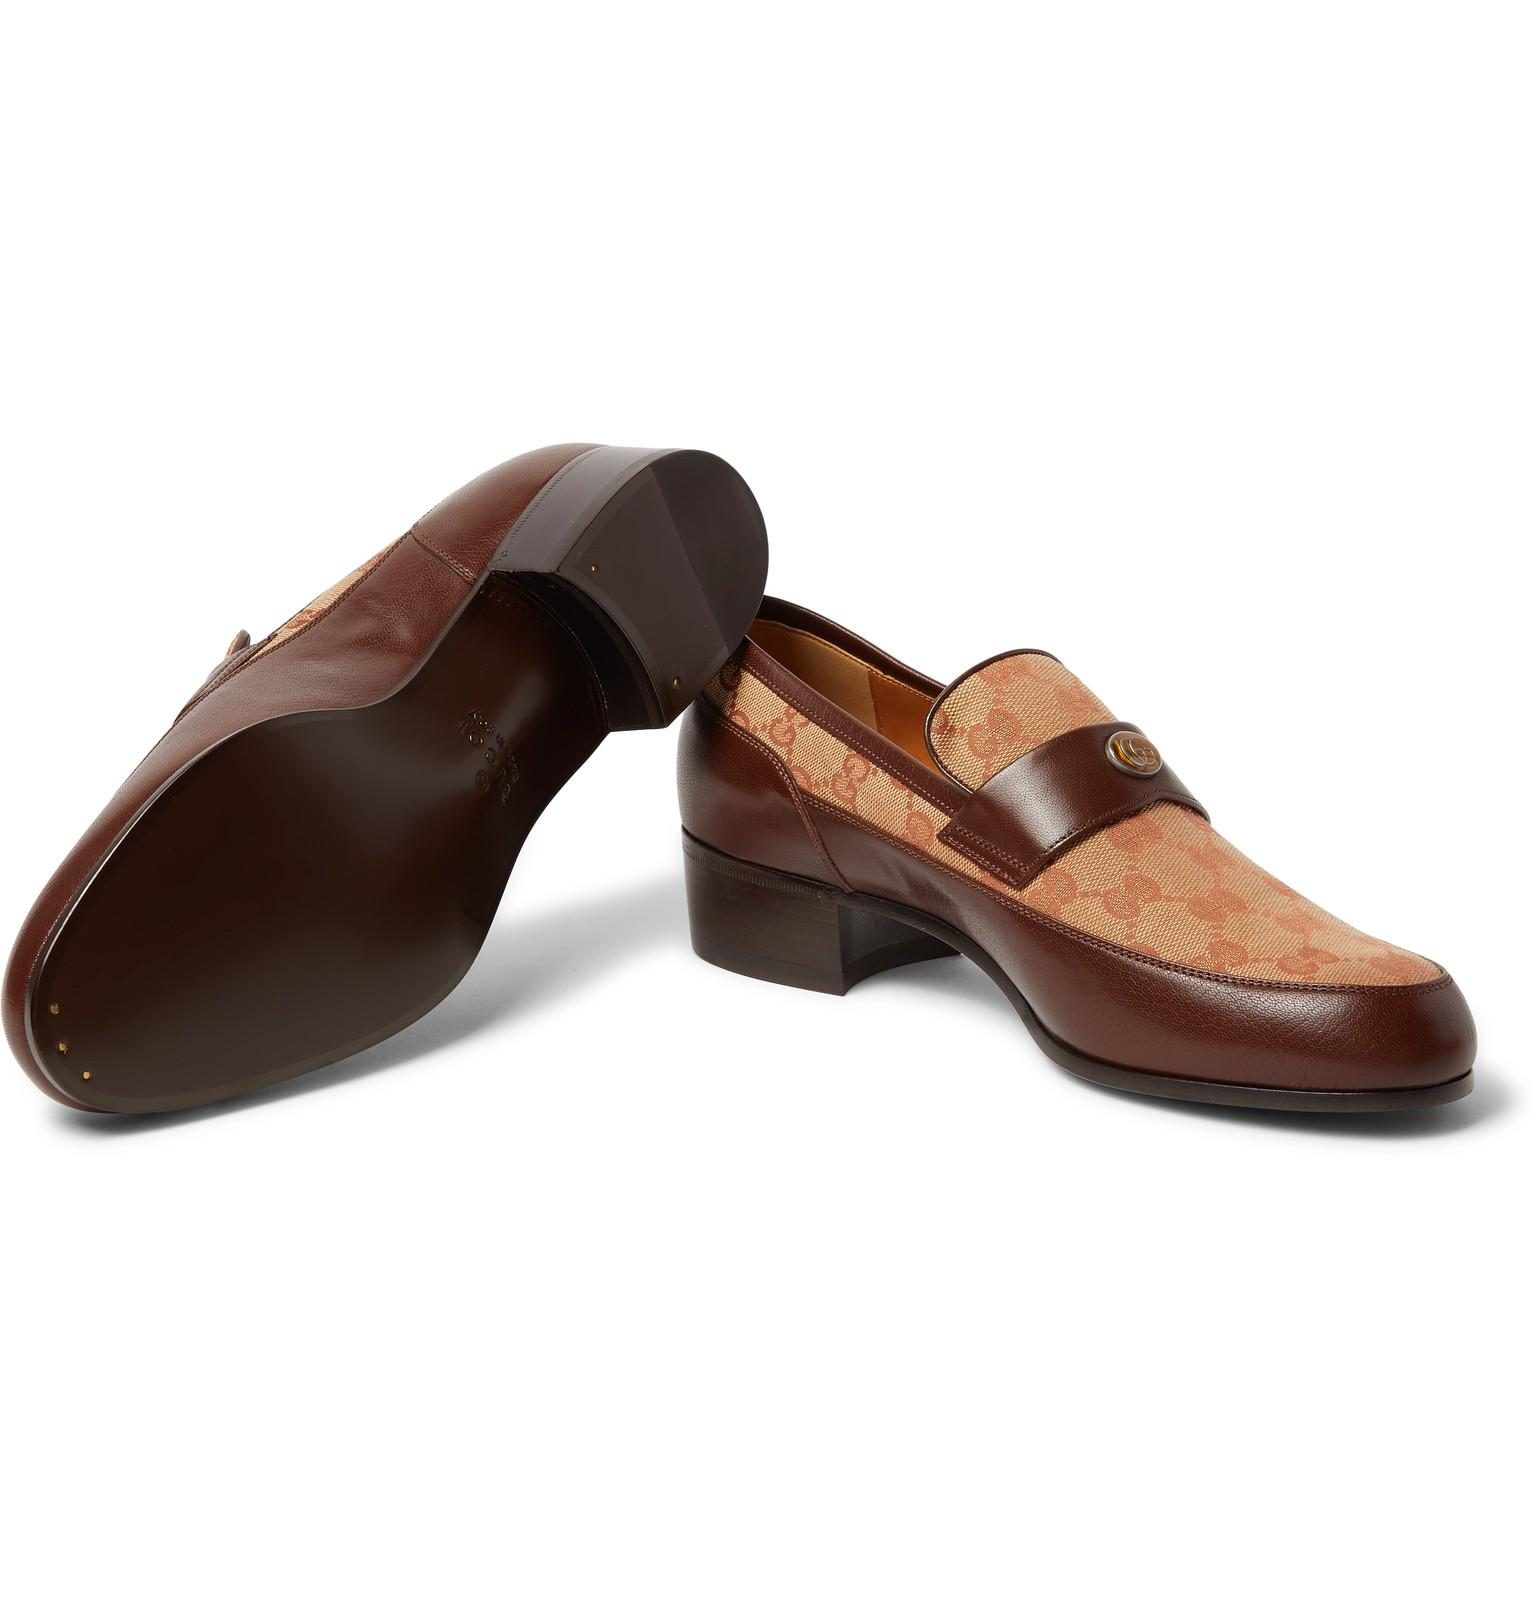 bbf3b3c1712 Gucci Original GG Loafers With Team Motif in Brown for Men - Save 36 ...